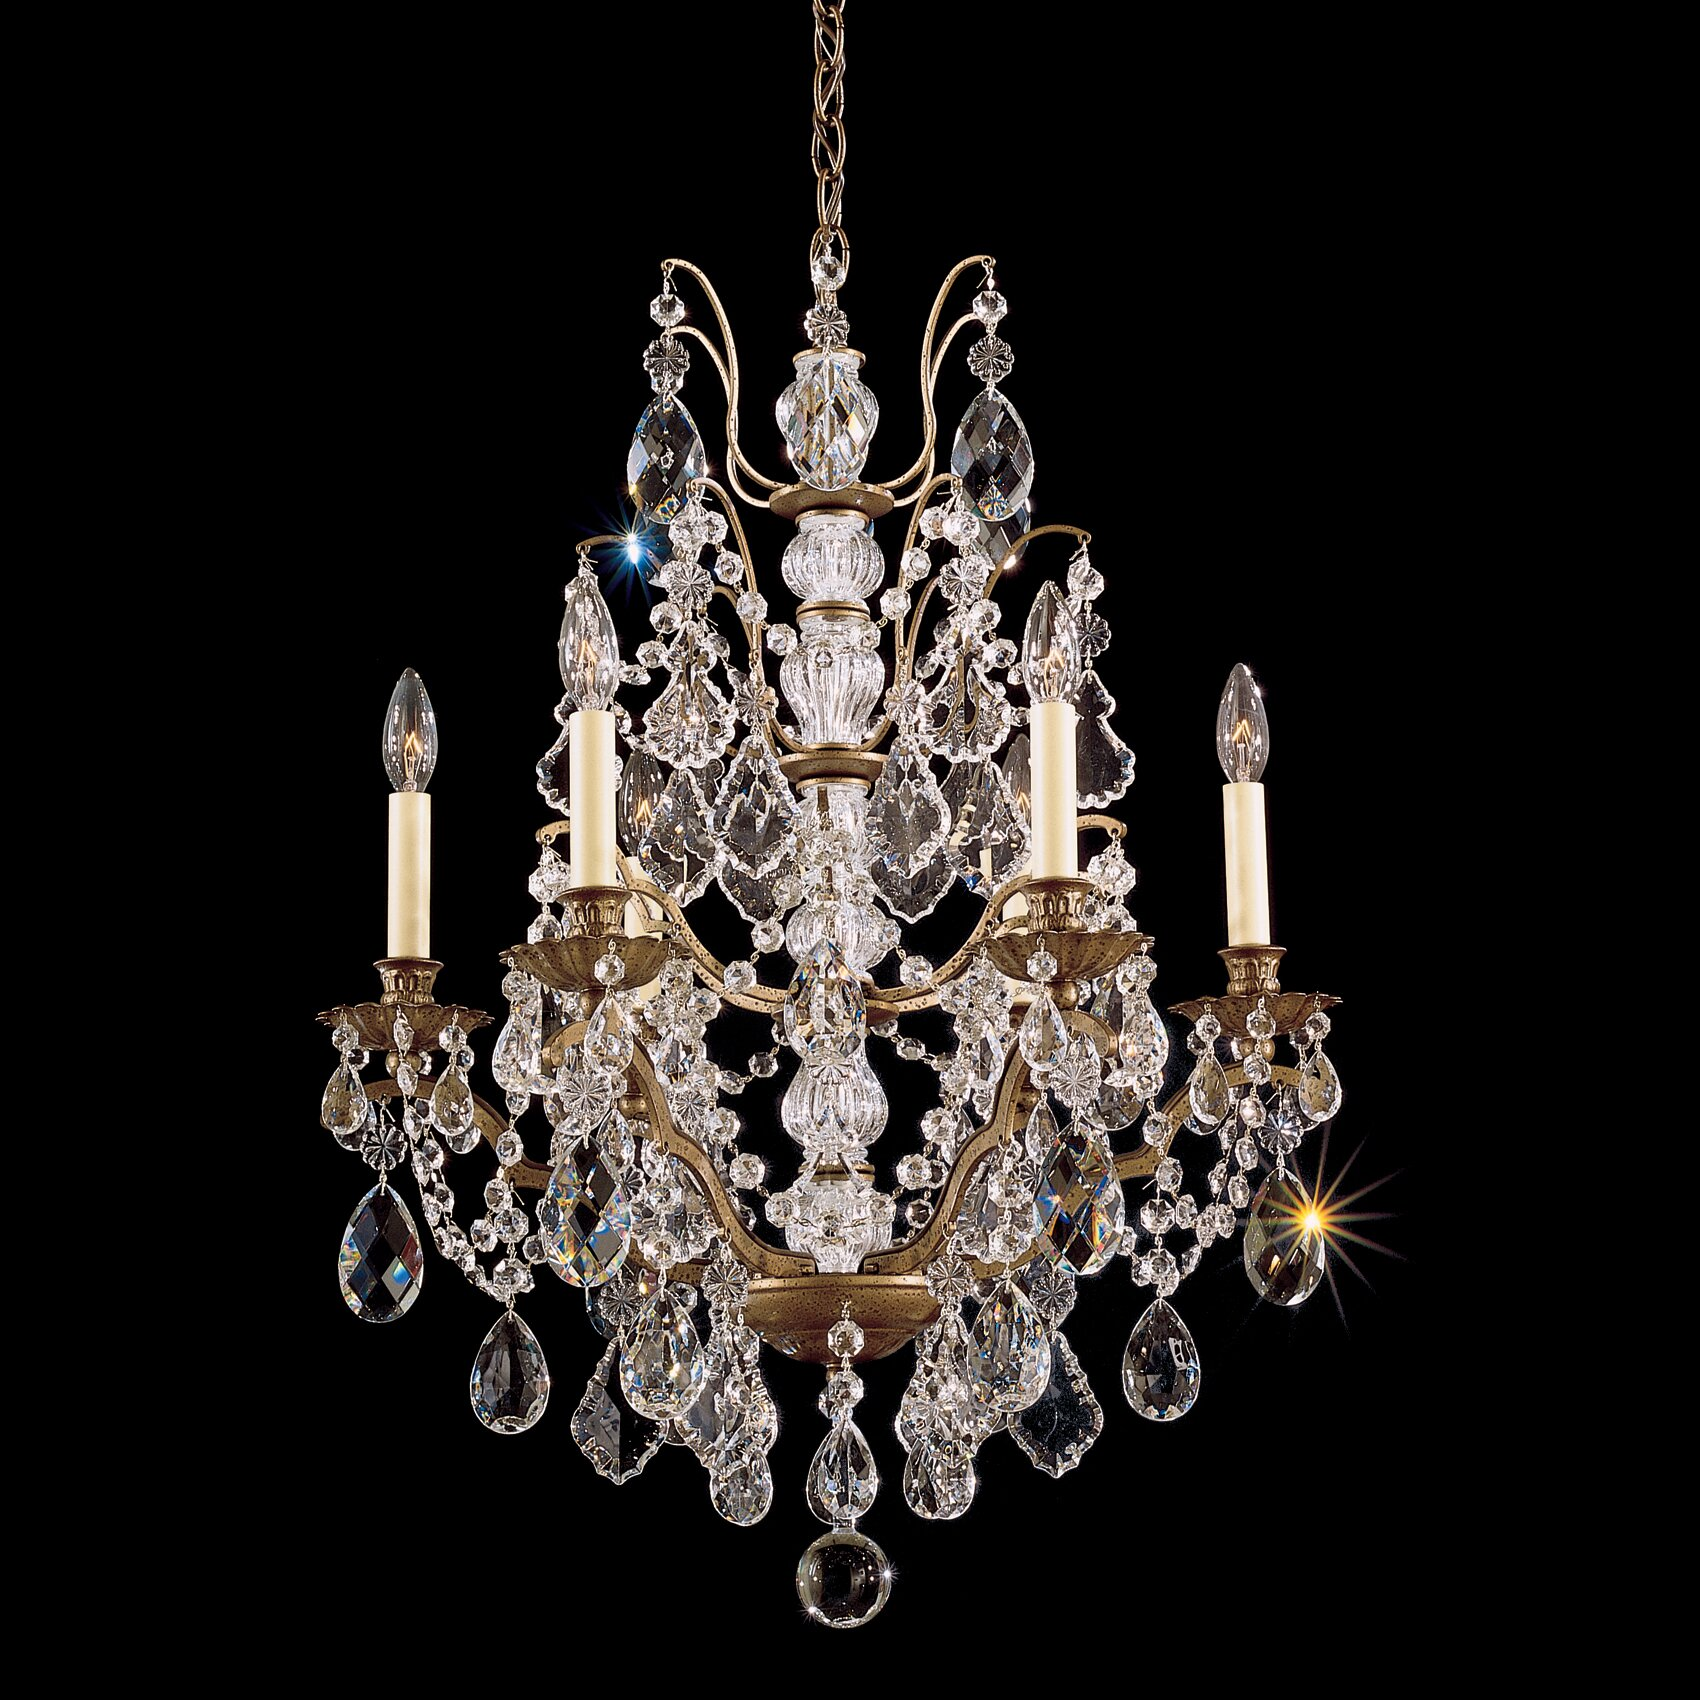 Wayfair Chandelier: Bordeaux 6 Light Chandelier